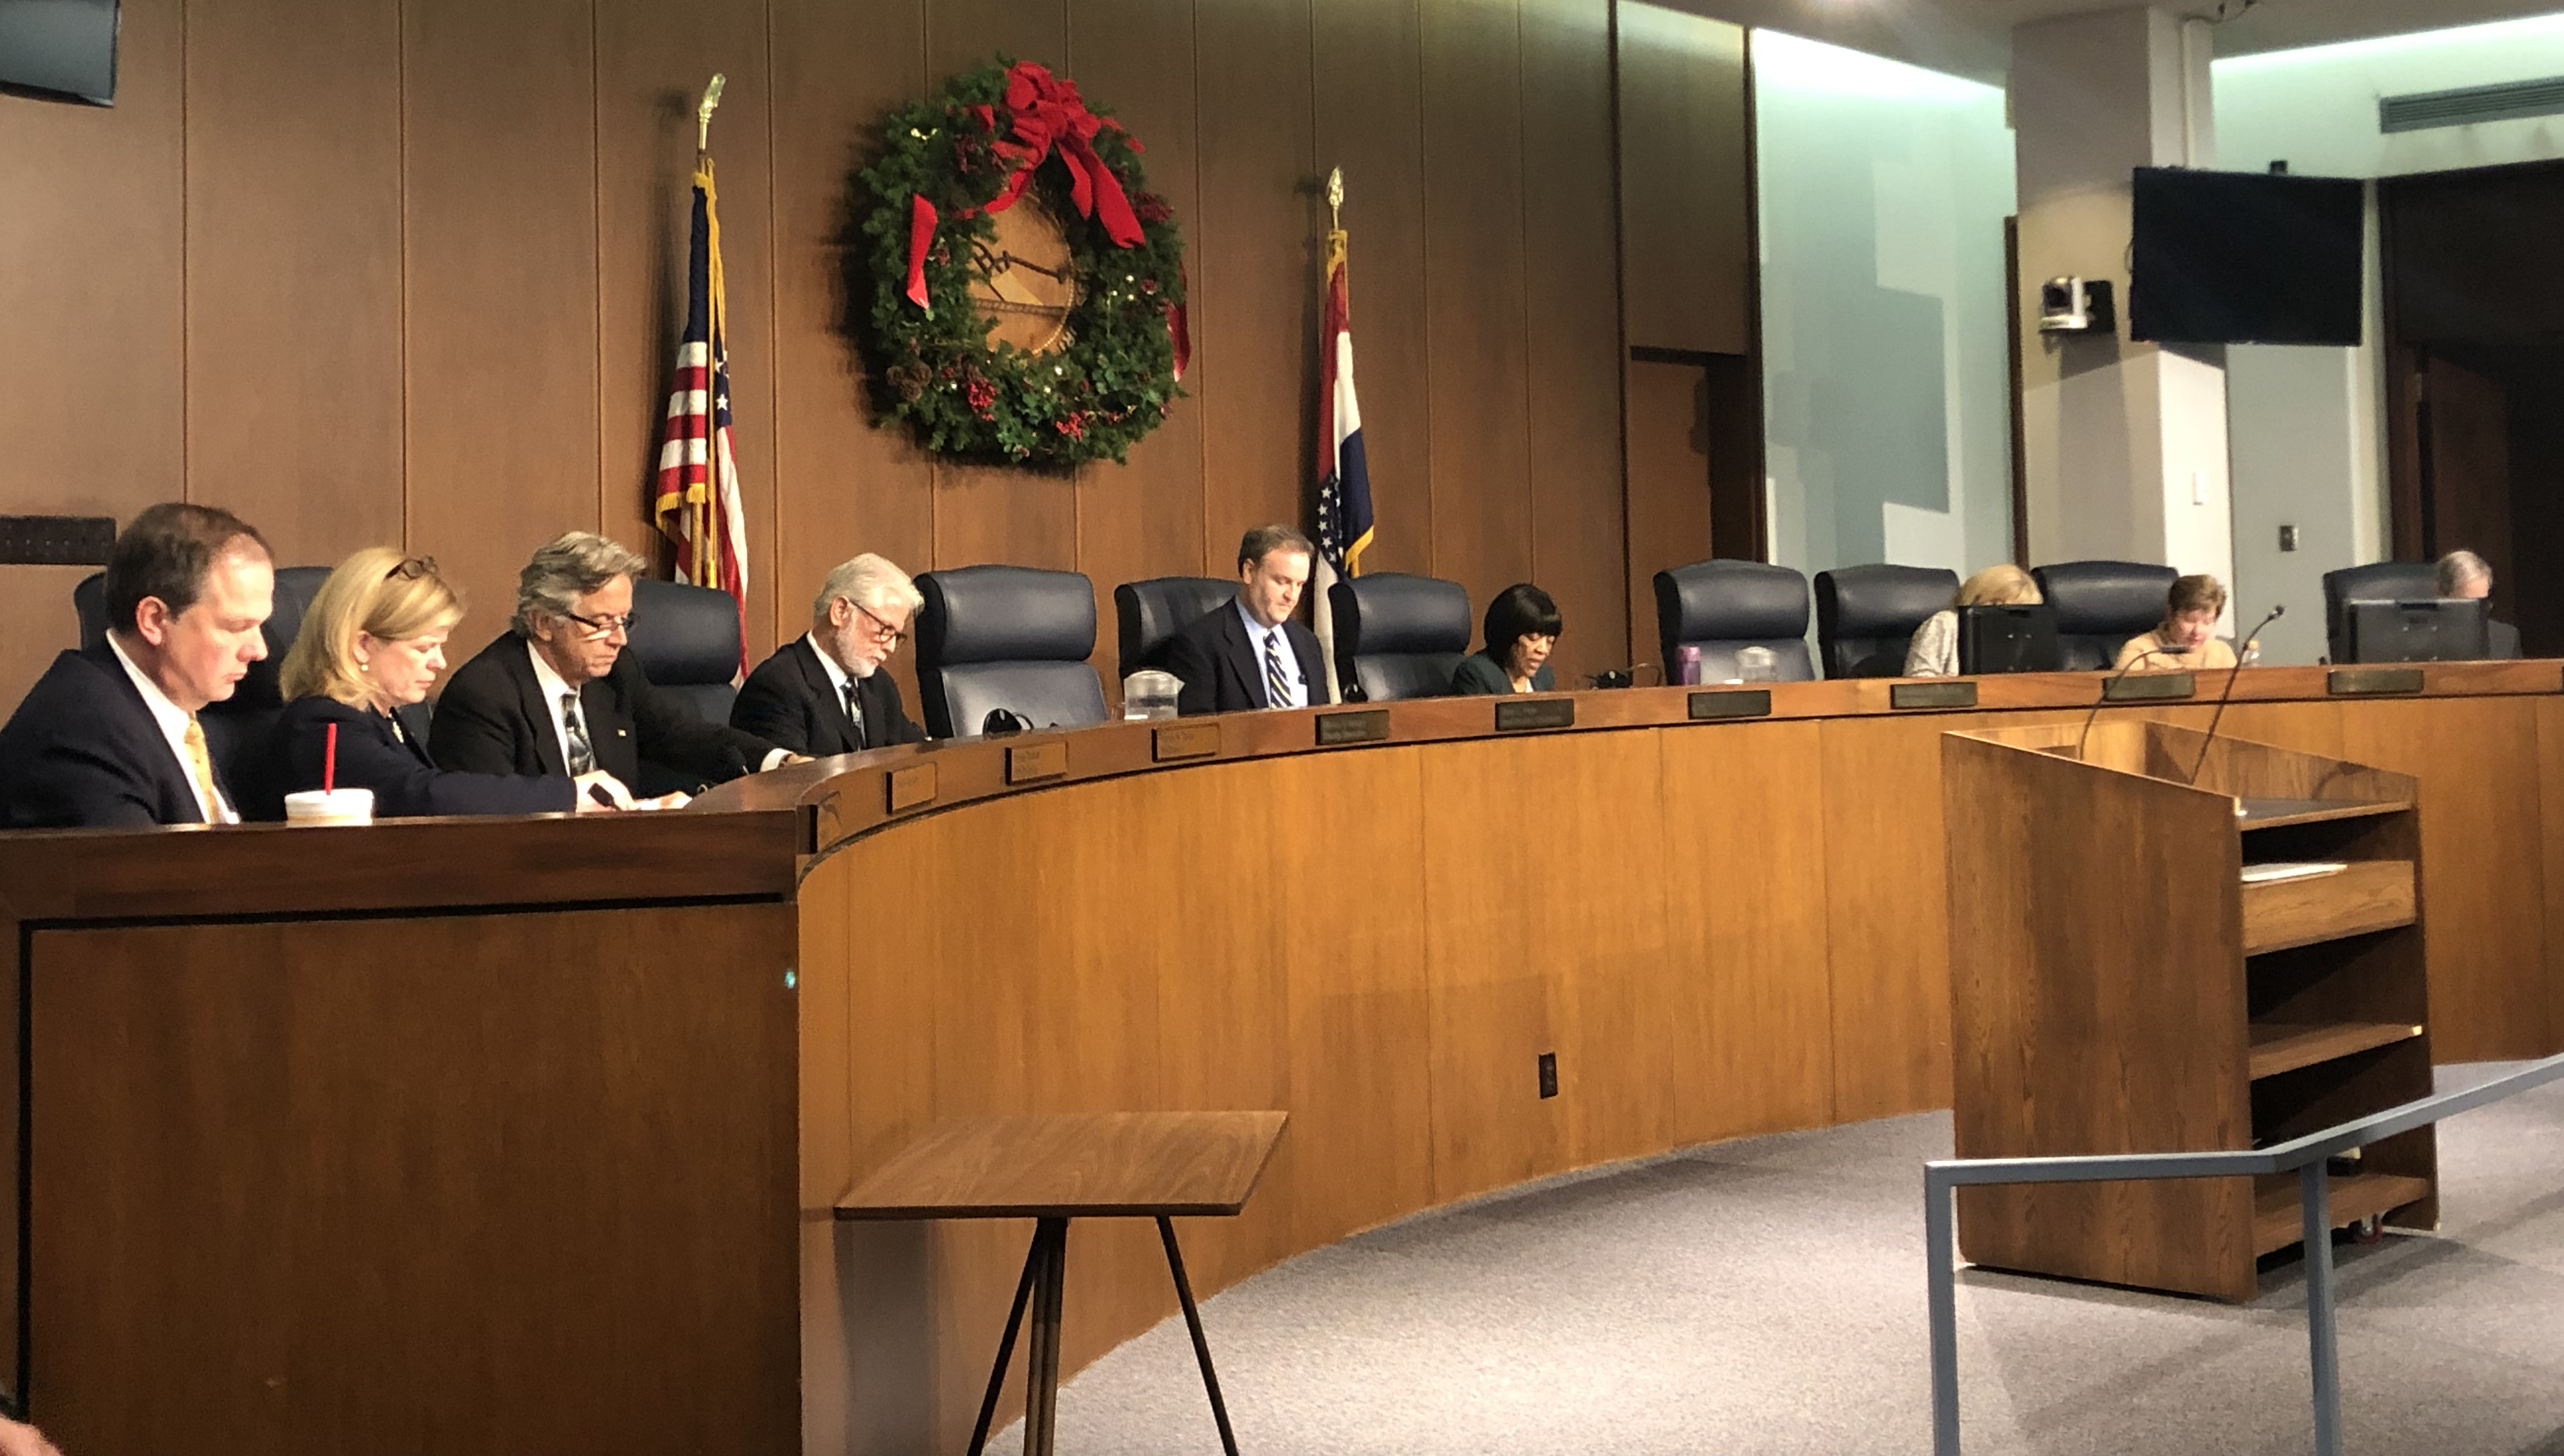 St. Louis County Council members at the meeting on November 27, 2018 (DANIELLE MAE FRANKLIN/CLAYTON TIMES)